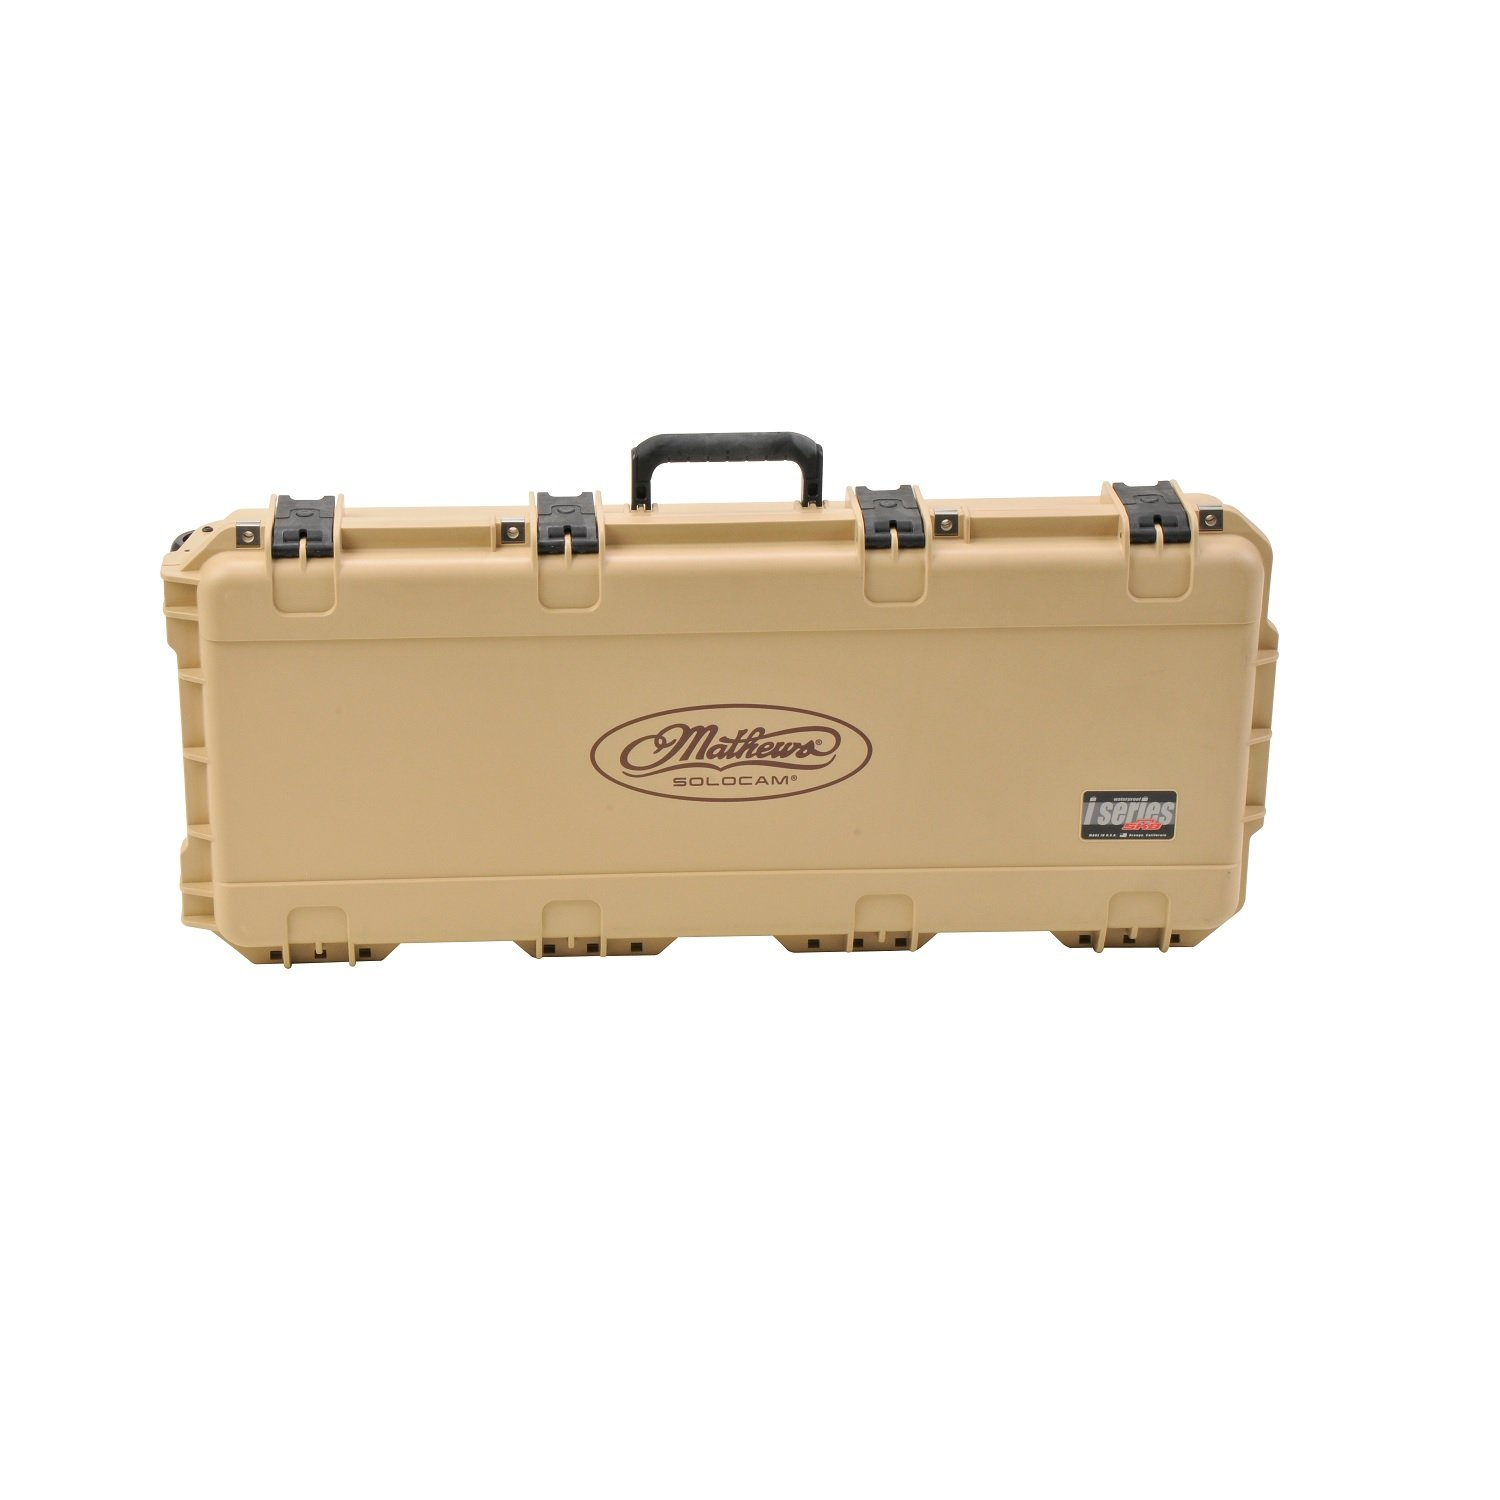 SKB Corp Mathews Iseries Small Bow Case, Tan by SKB (Image #1)